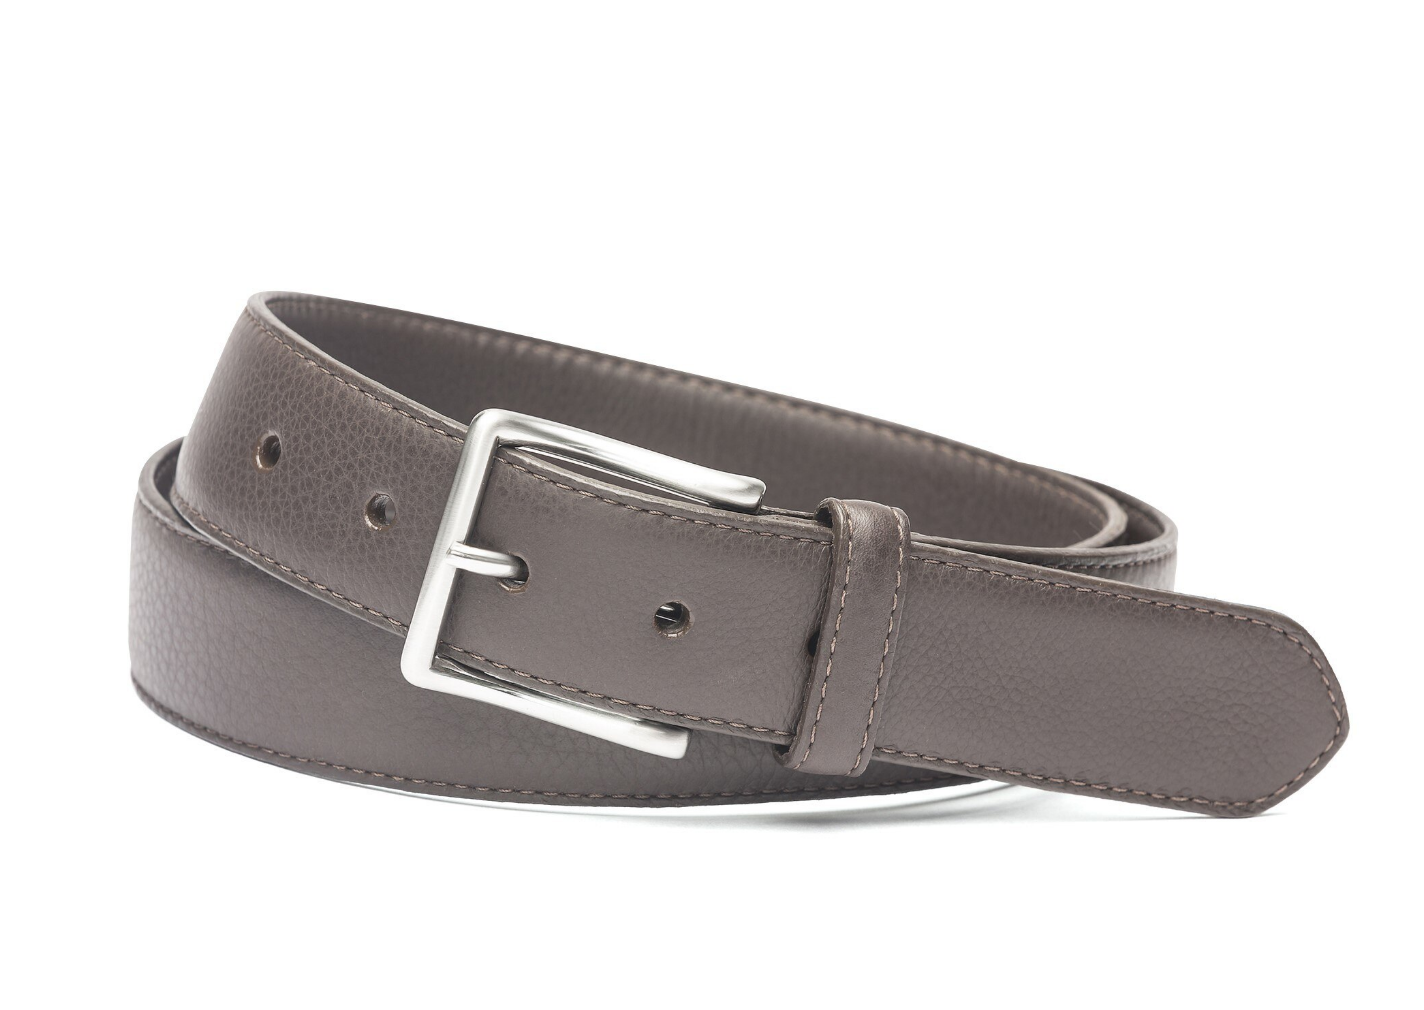 W.KLEINGBERG HIGH PEBBLED BELT - CHOCOLATE WITH ORANGE STITCHING